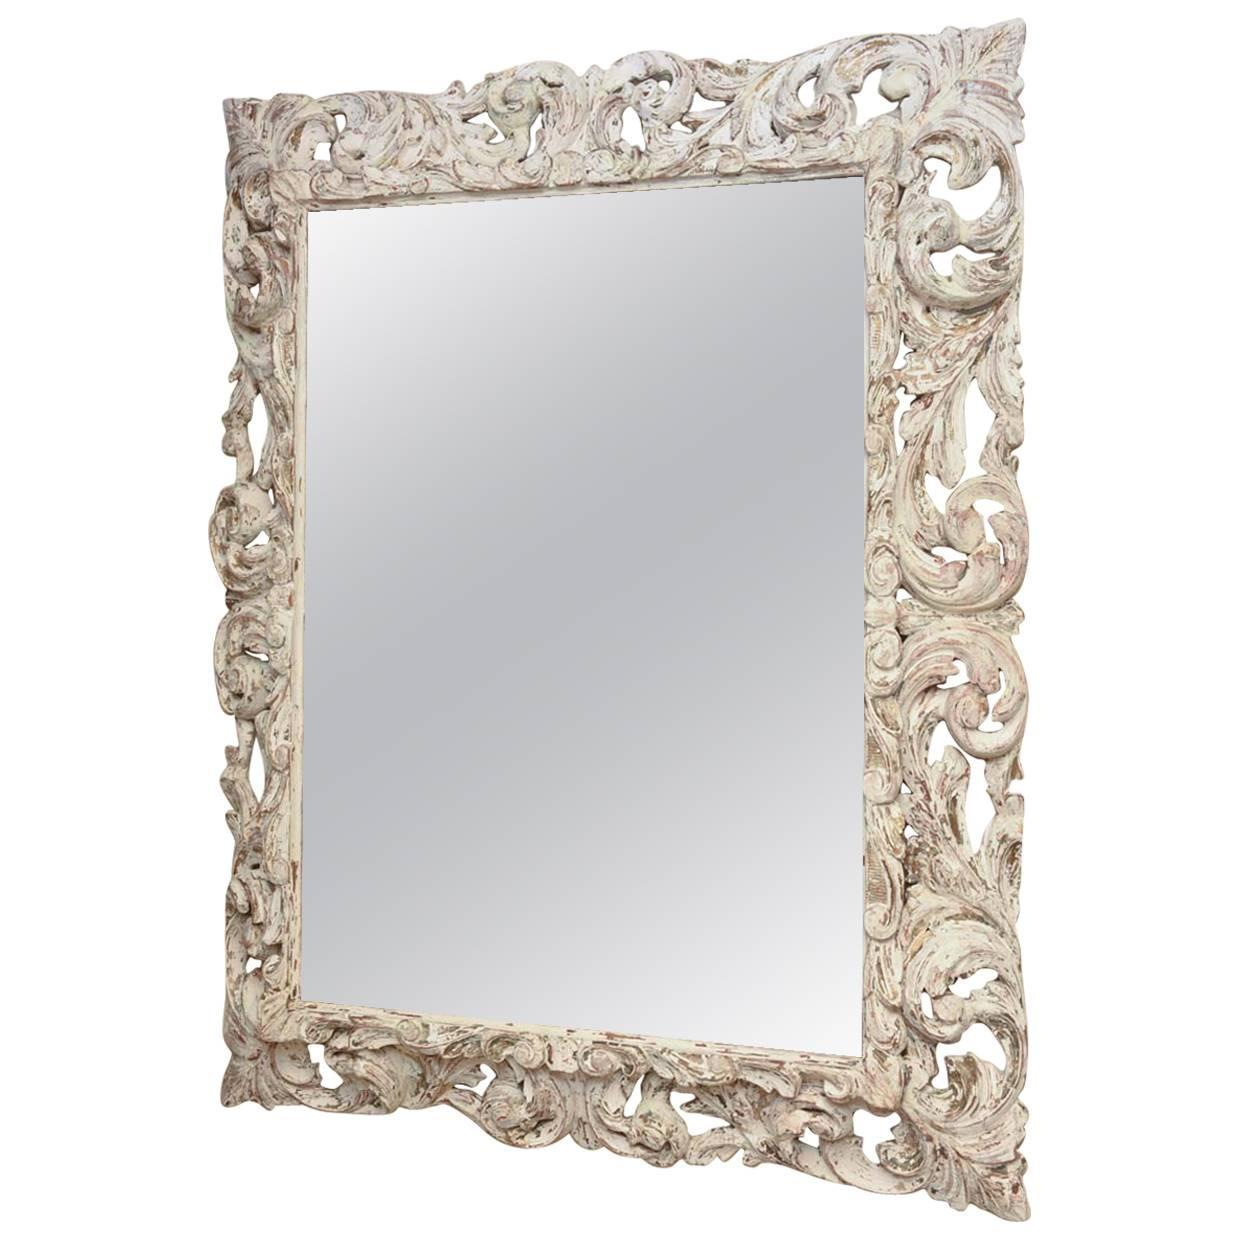 18th Century Foliate-Carved Wood Mirror Frame For Sale at 1stdibs